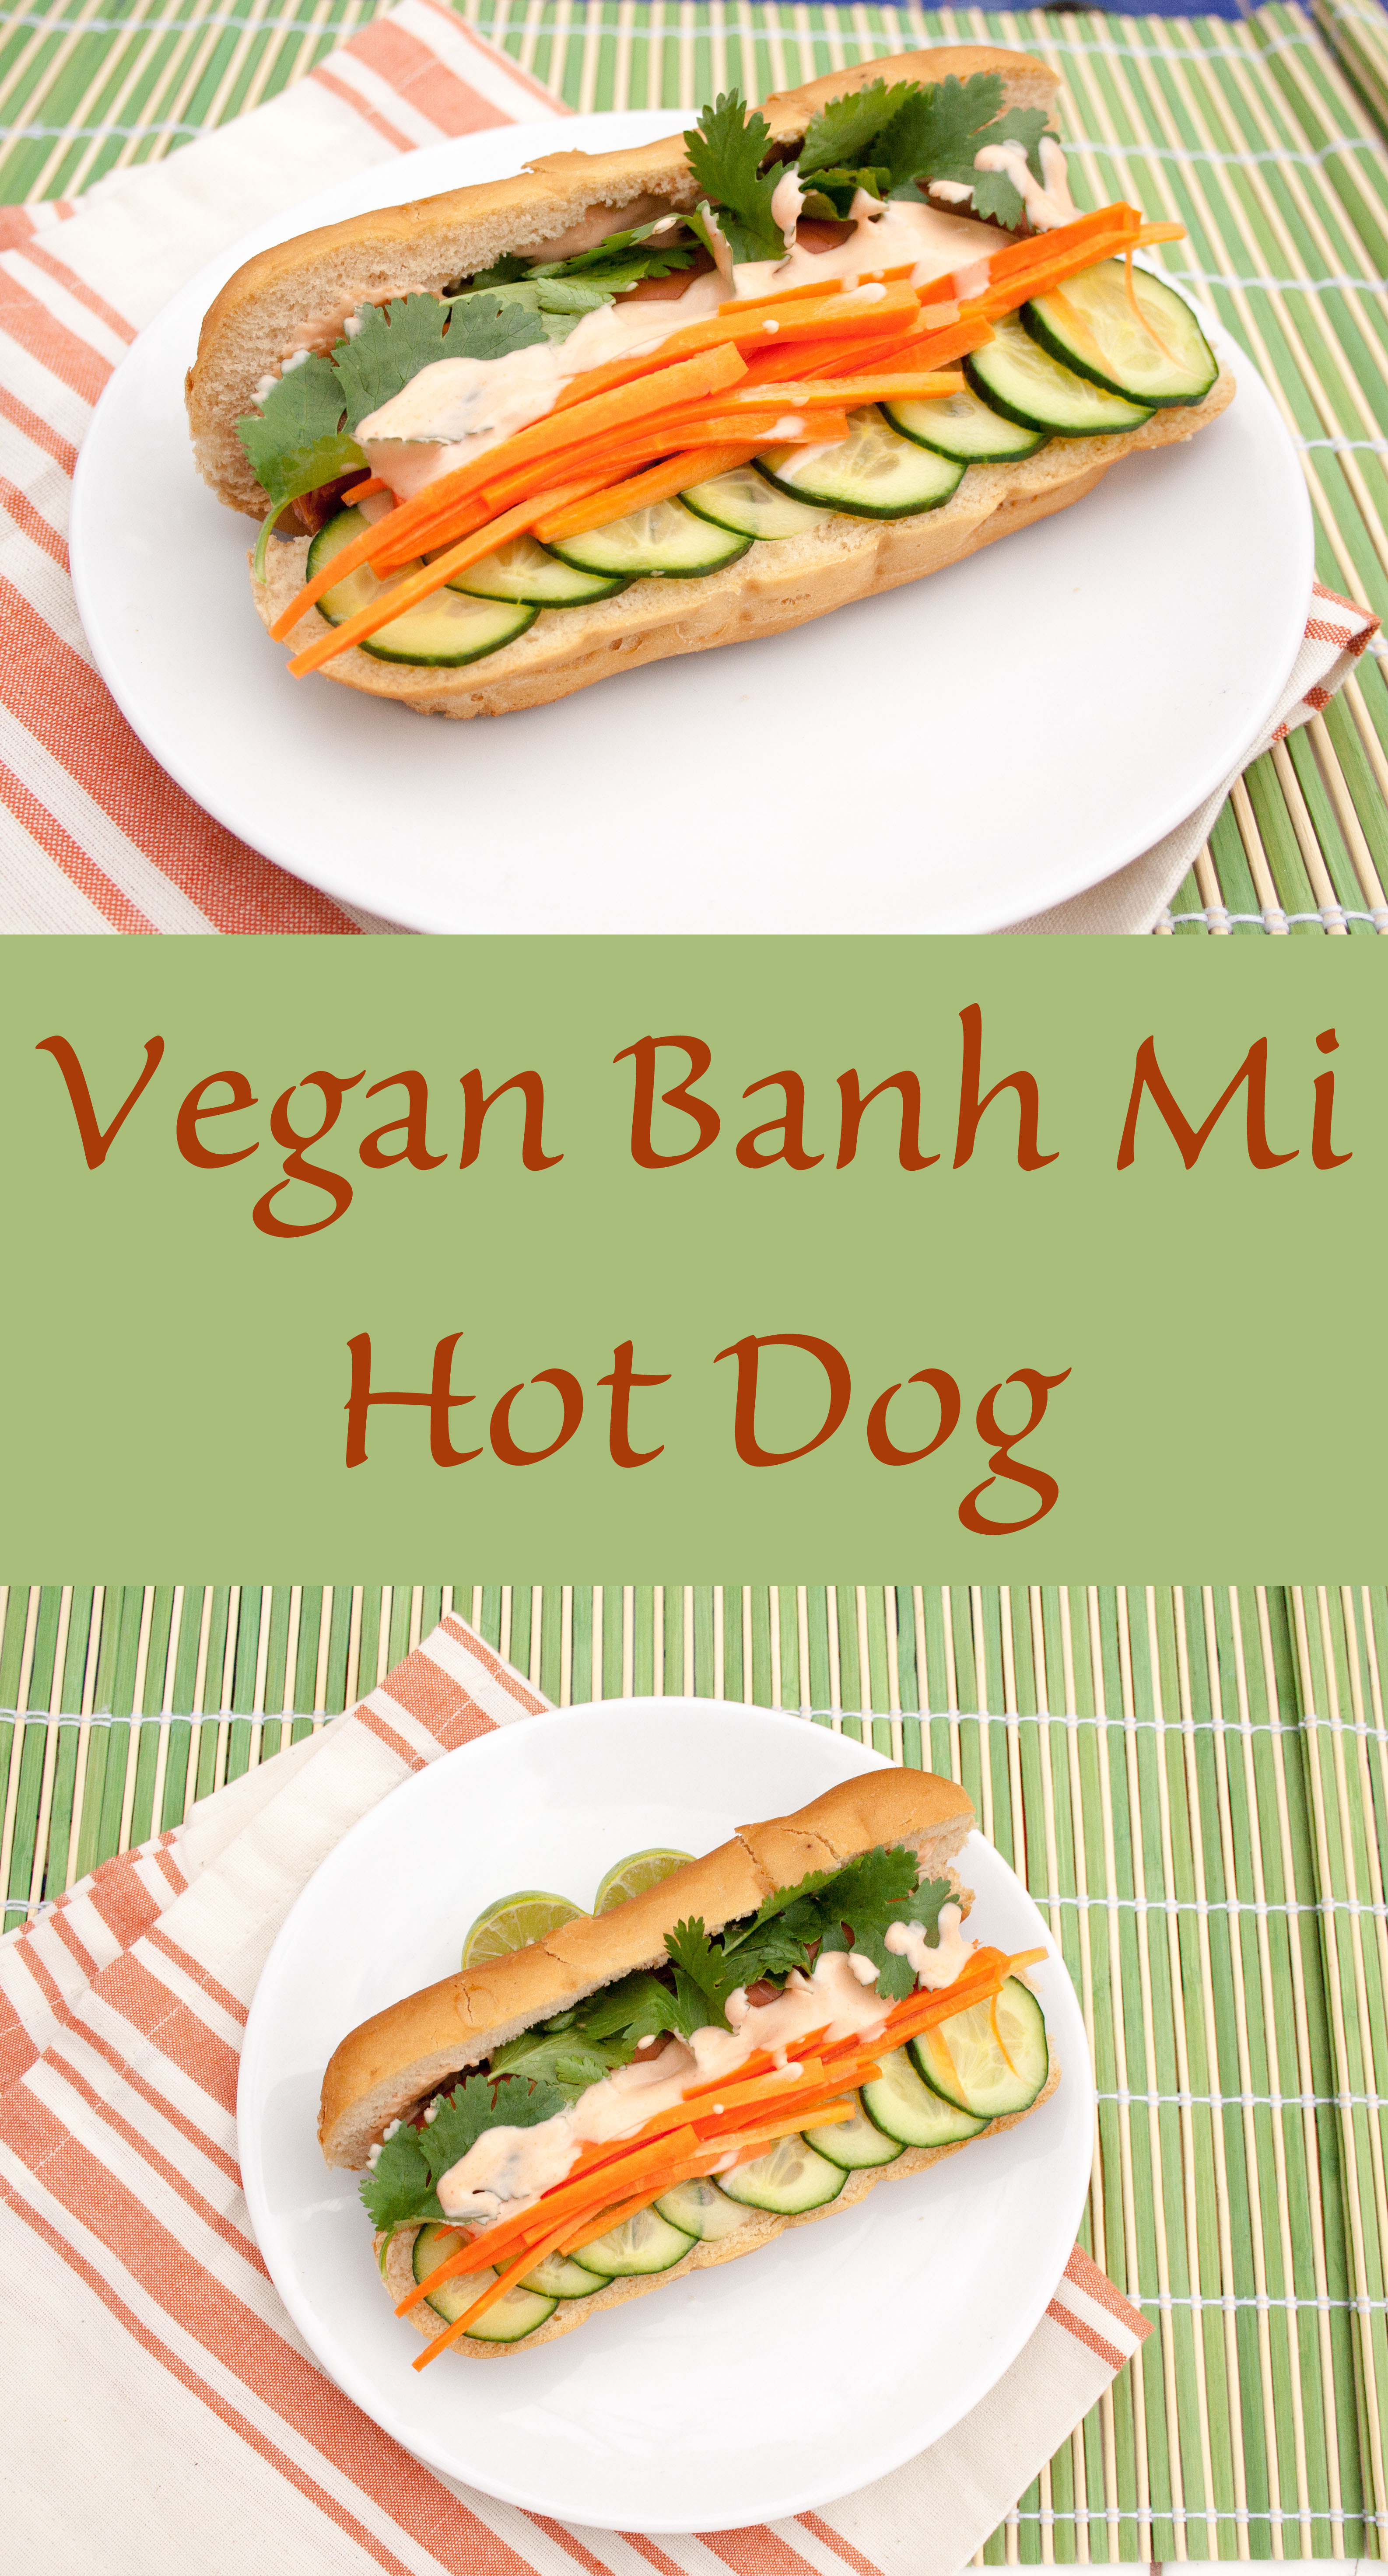 Vegan Bánh Mì Hot Dog collage photo with text.